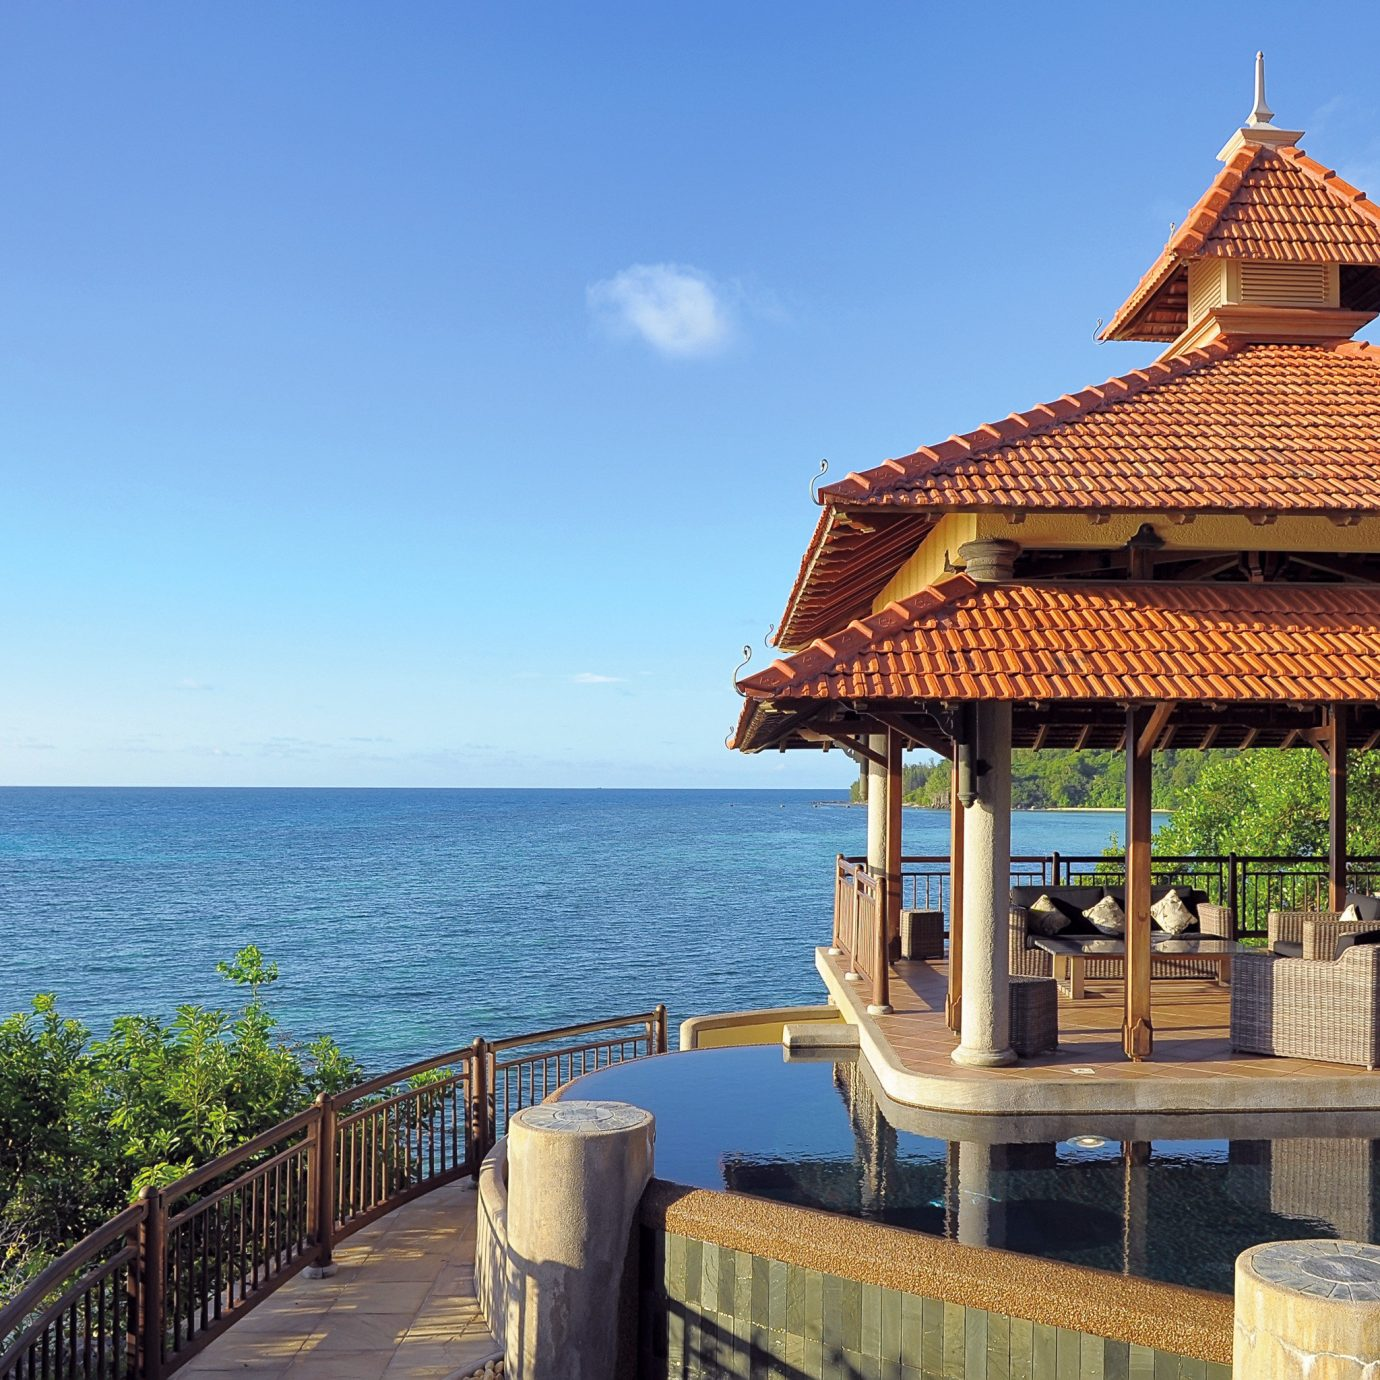 Architecture Beach Beachfront Buildings Exterior Resort sky water overlooking wooden Sea pier tower travel